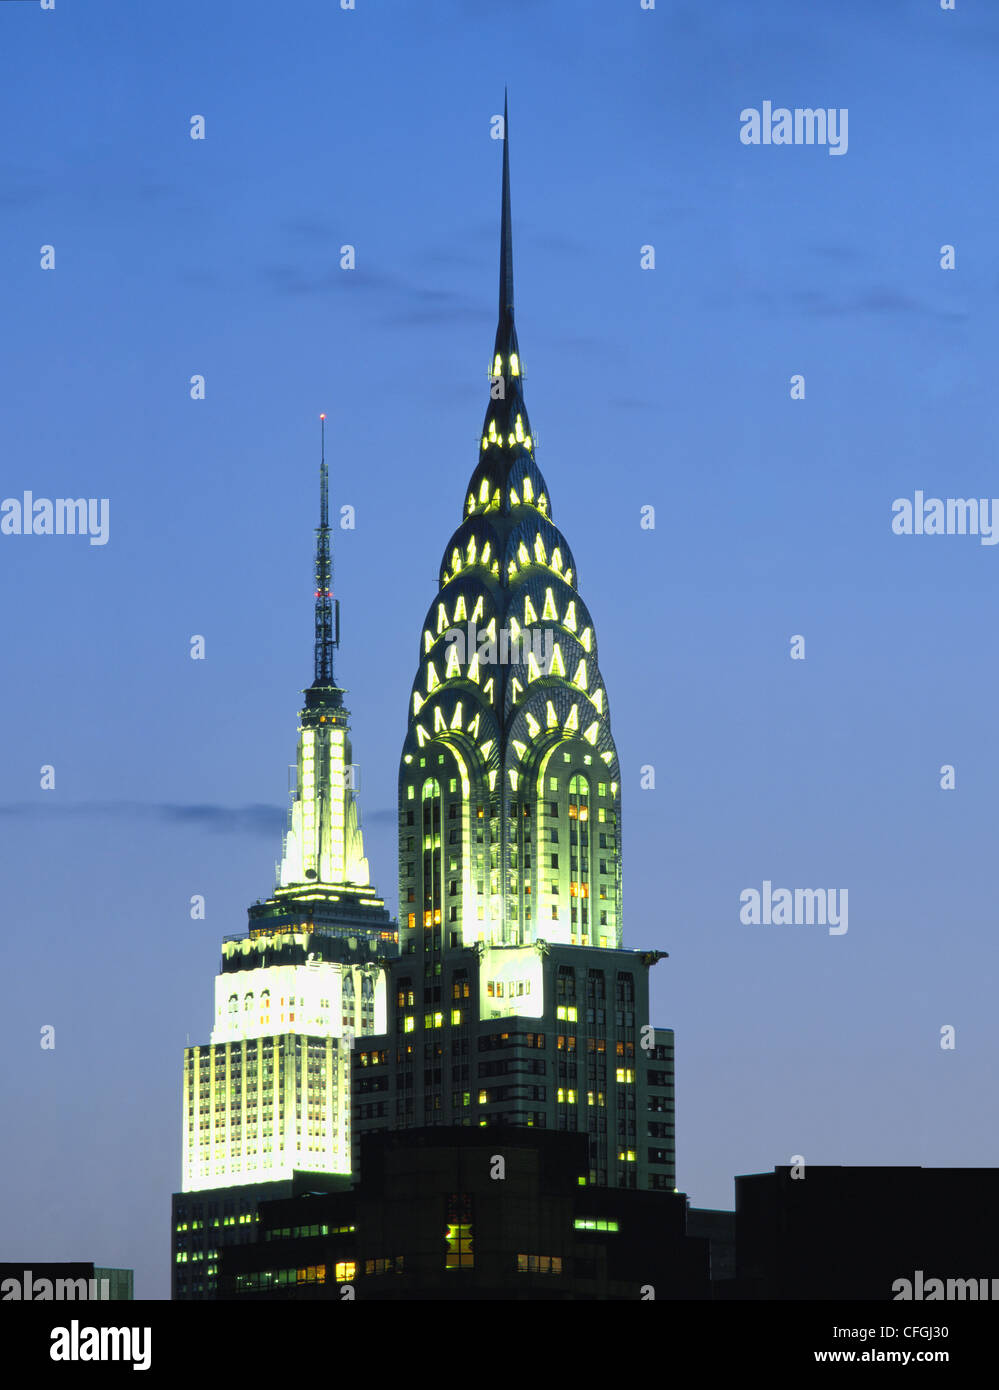 CHRYSLER AND EMPIRE STATE BUILDINGS AT NIGHT, NEW YORK, USA. Stock Photo